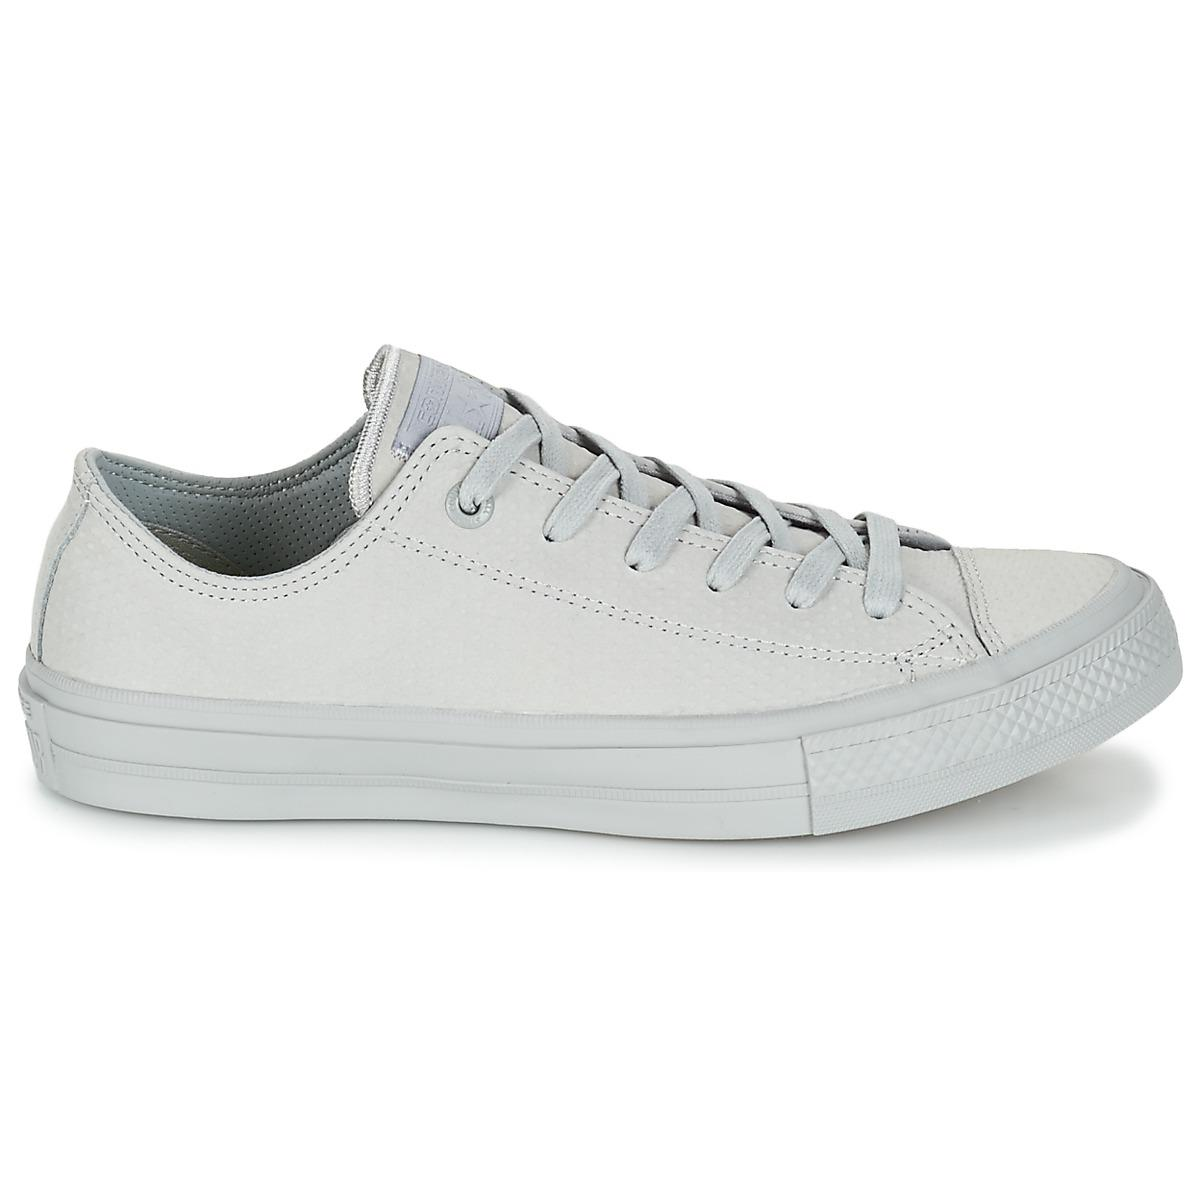 Converse Chuck Taylor All Star Ii - Ox Shoes (trainers) in Grey (Grey)